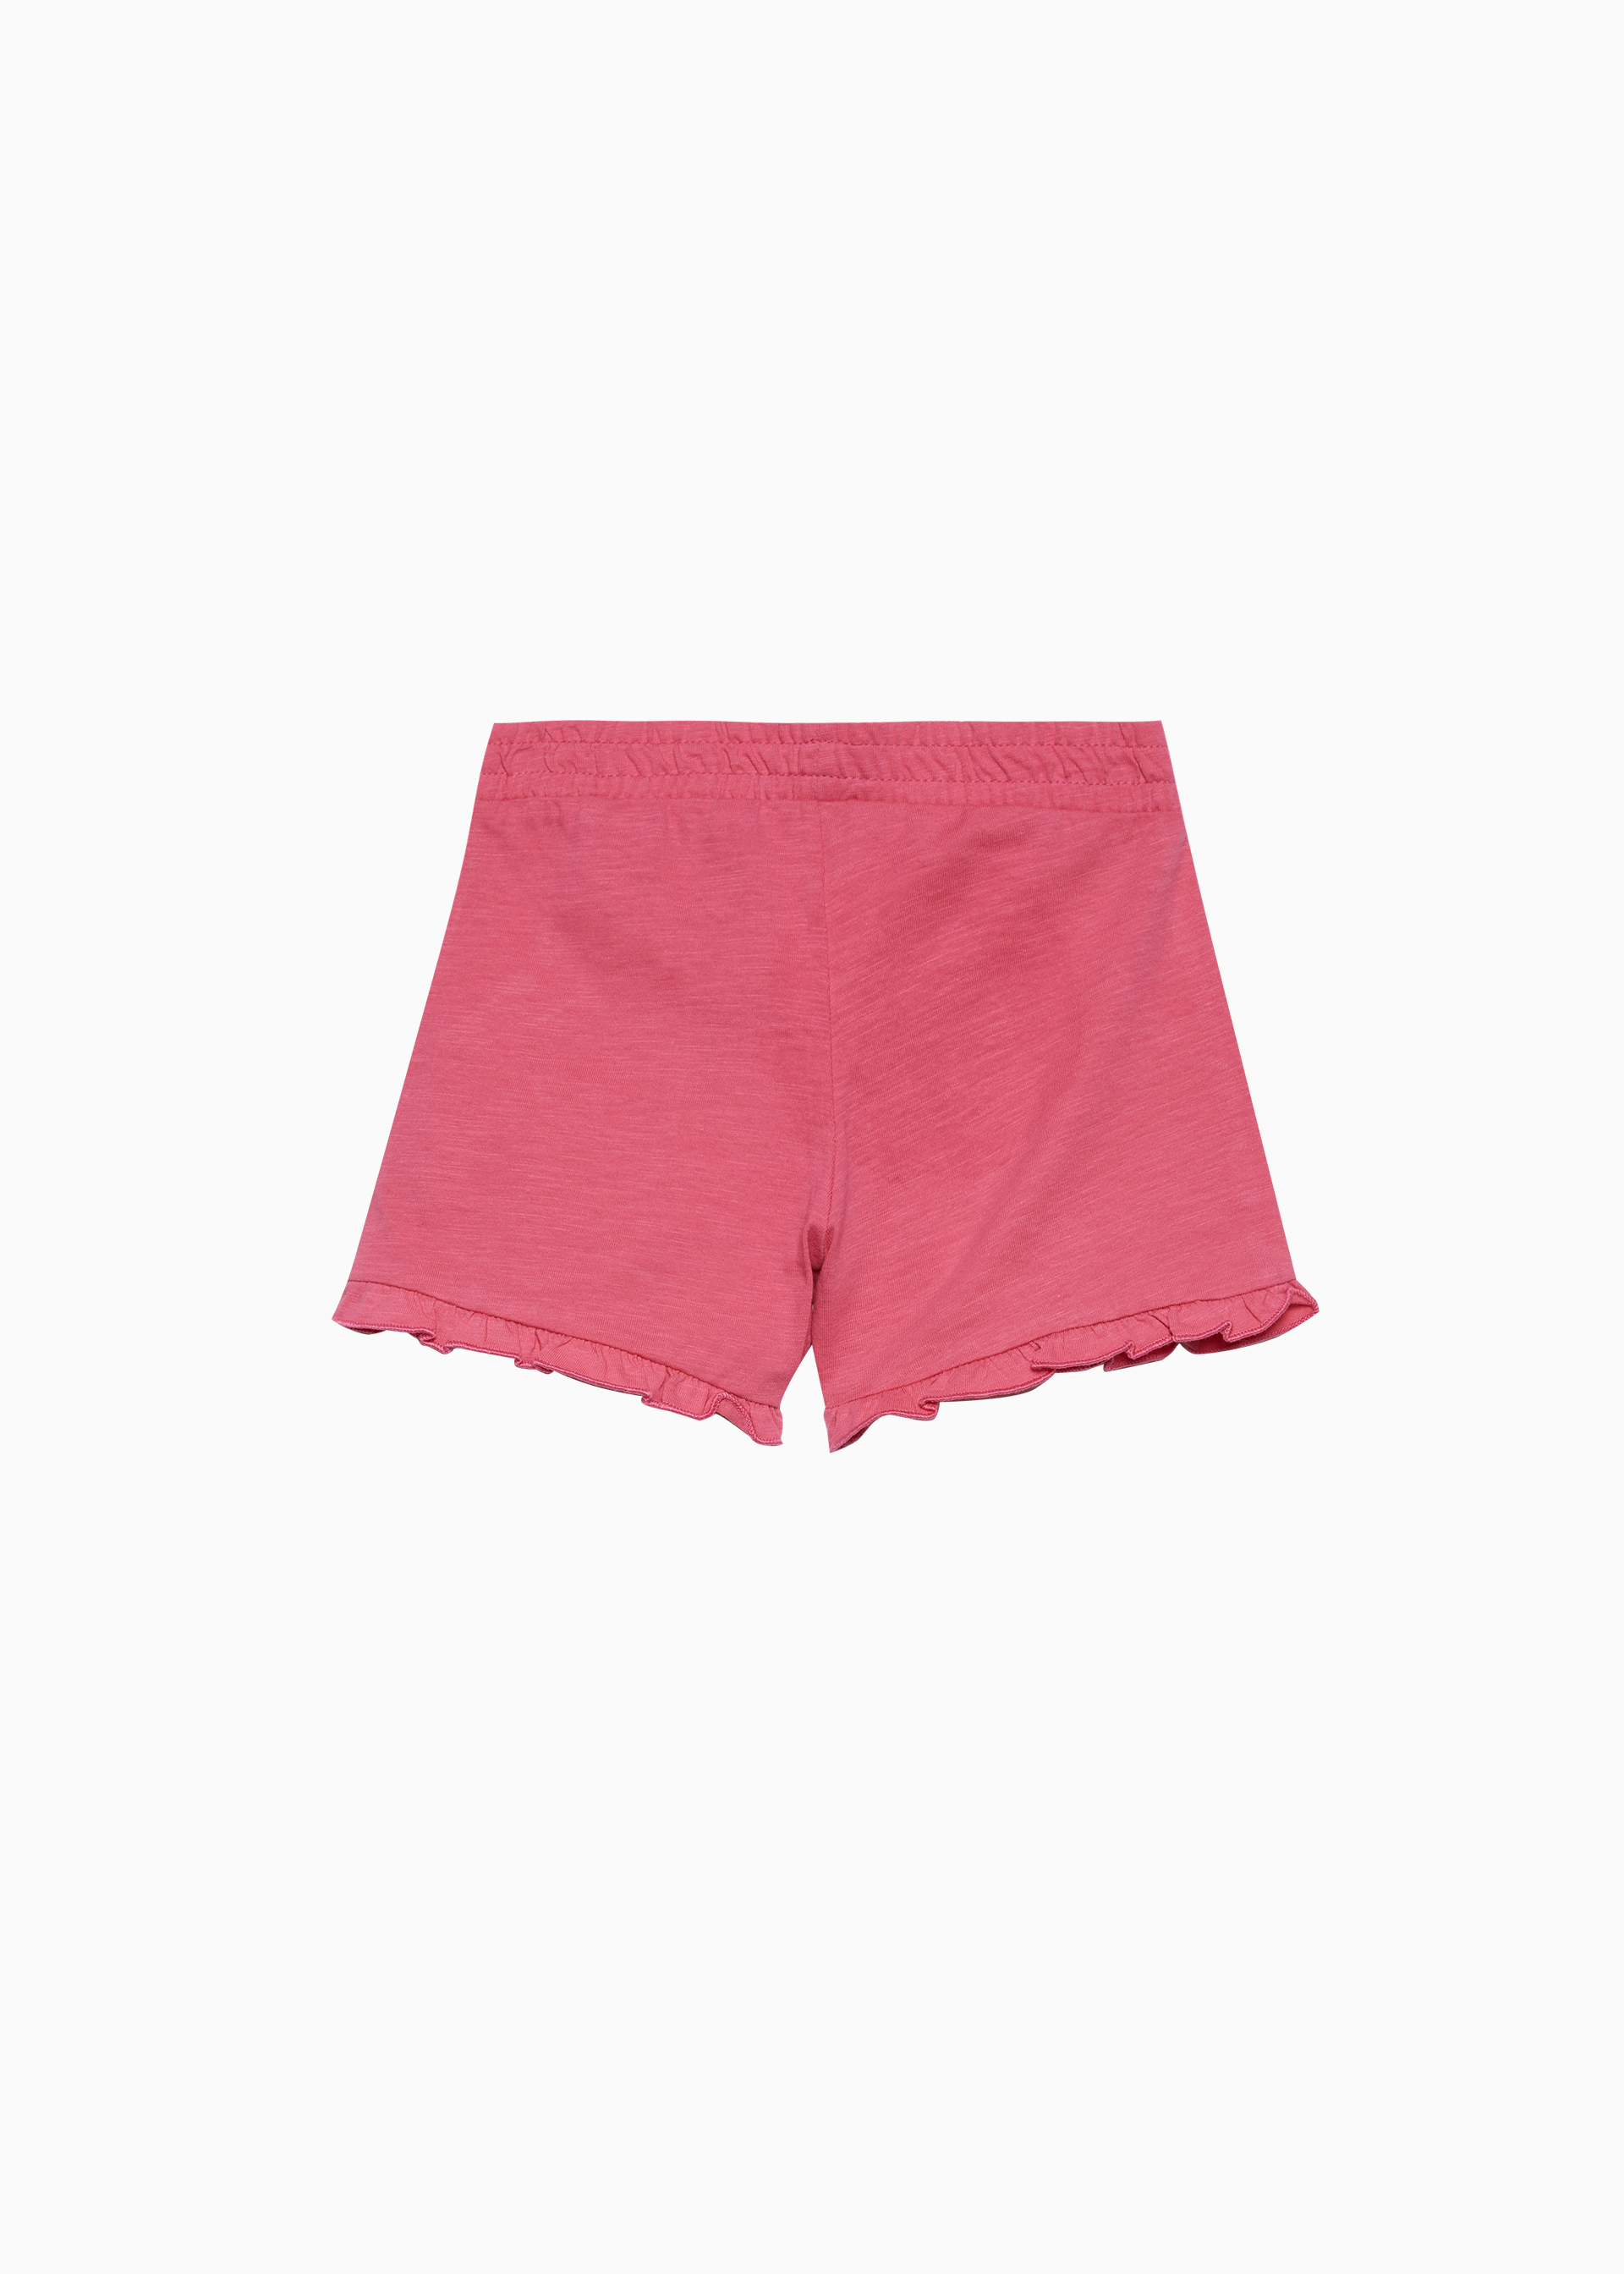 Shorts in jersey slub